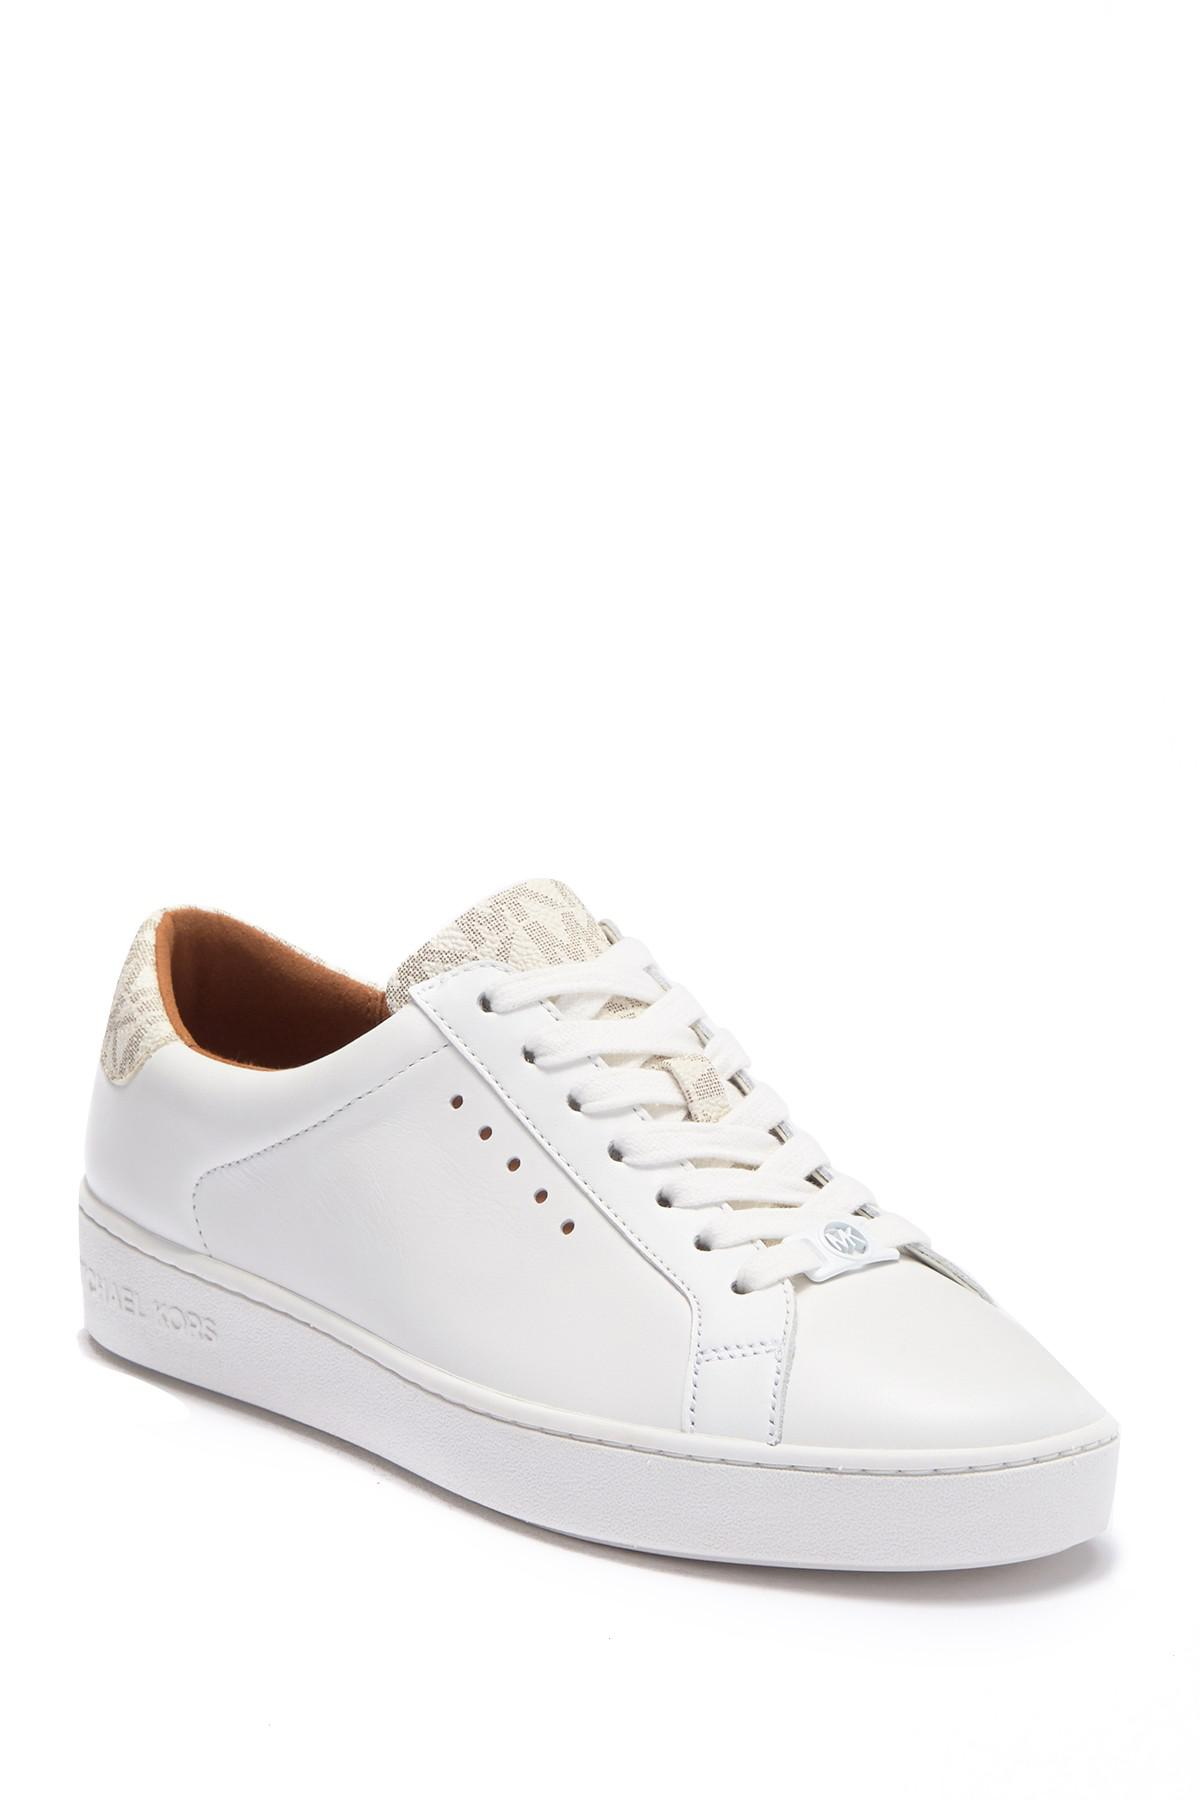 707af289741ac Lyst - Michael Michael Kors Irving Leather Brand Logo Lace-up Sneaker